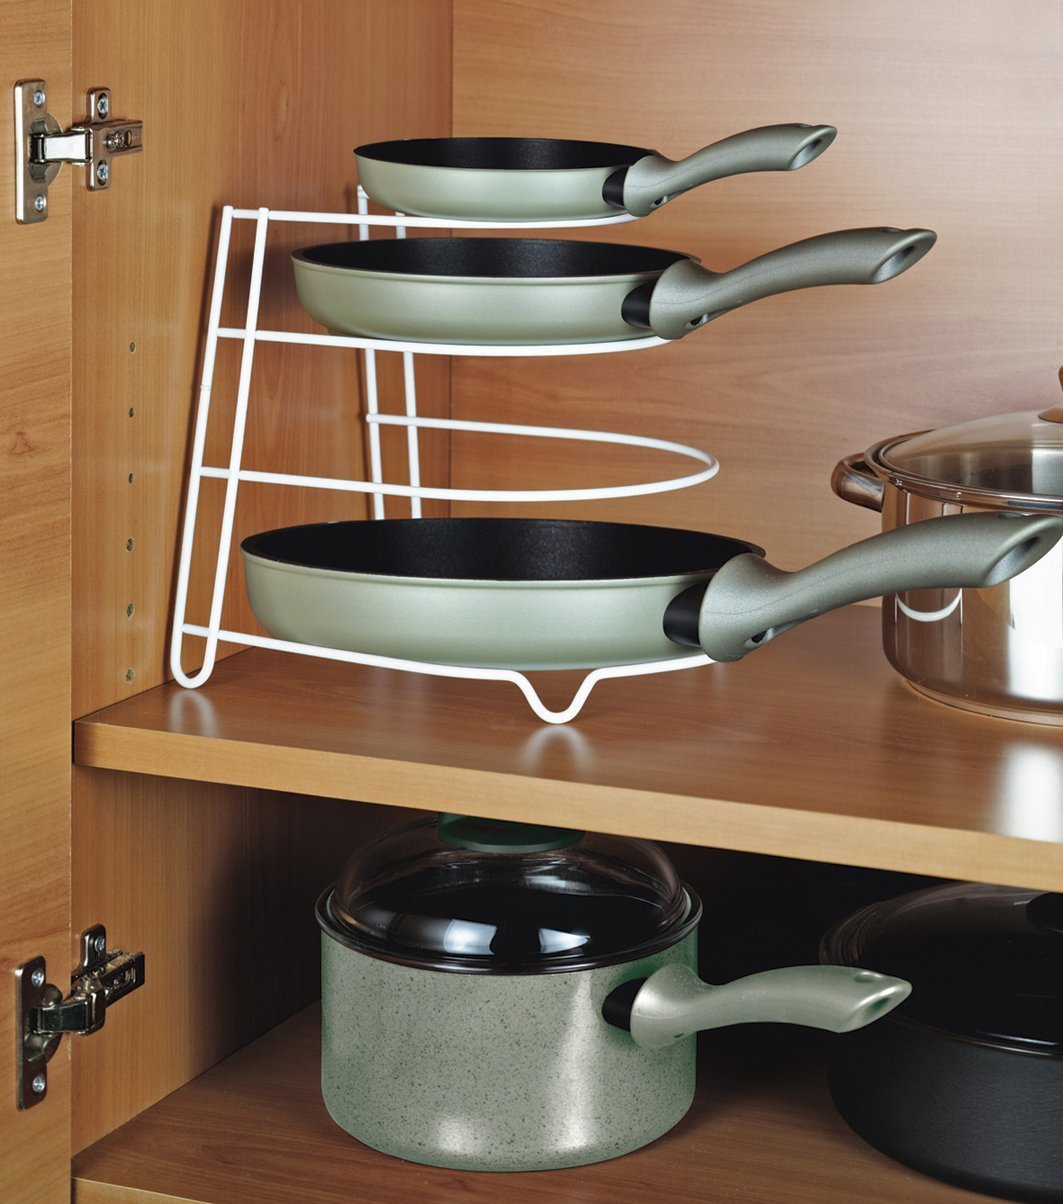 Metaltex Sierra Frying Pan Rack At Barnitts Online Store